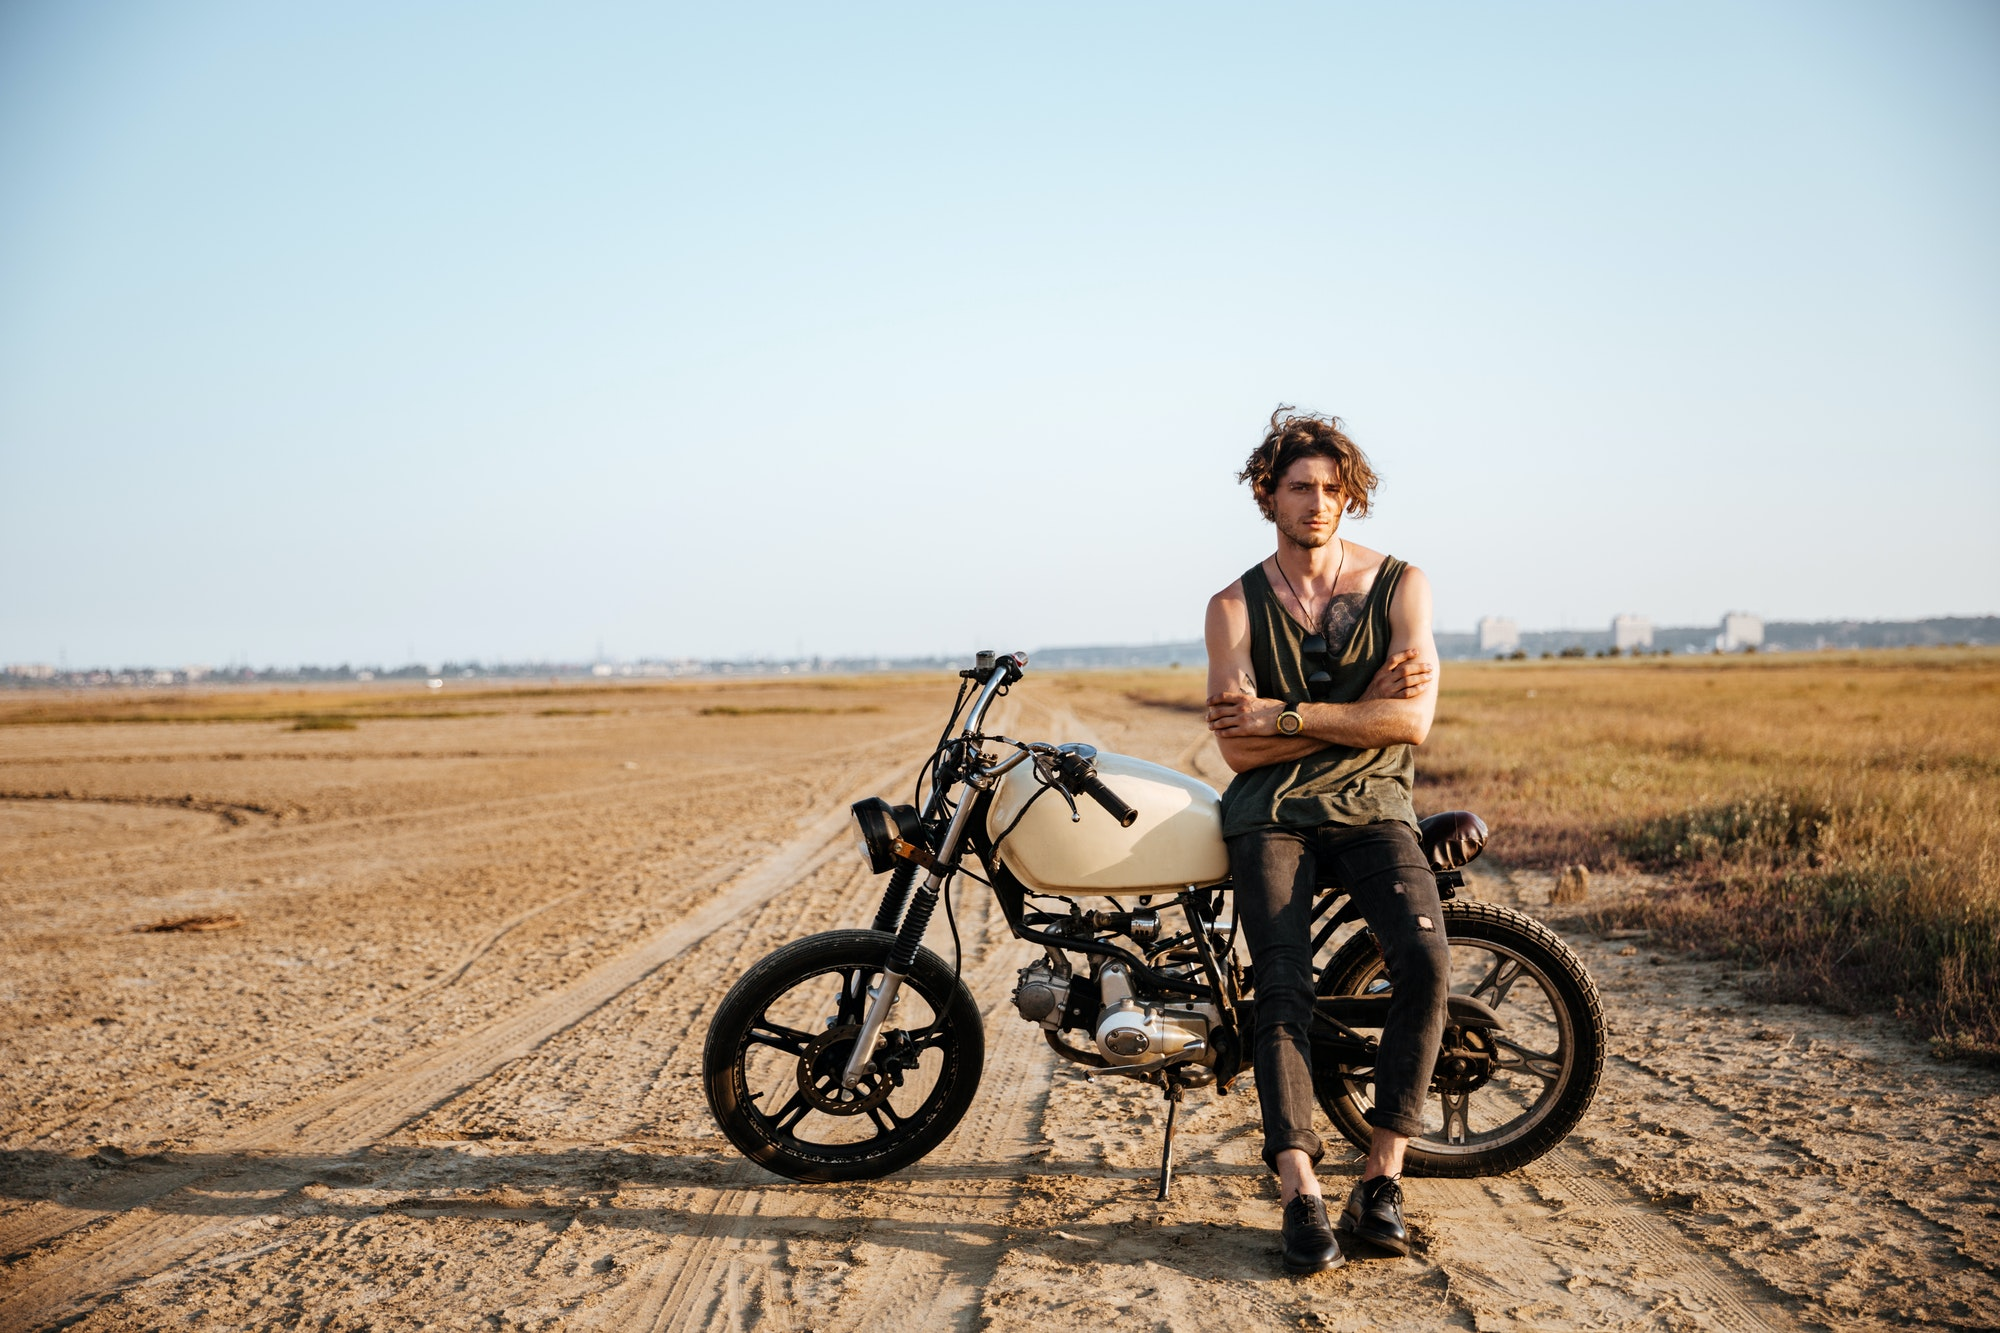 Young brutal man leaning on a motorcycle